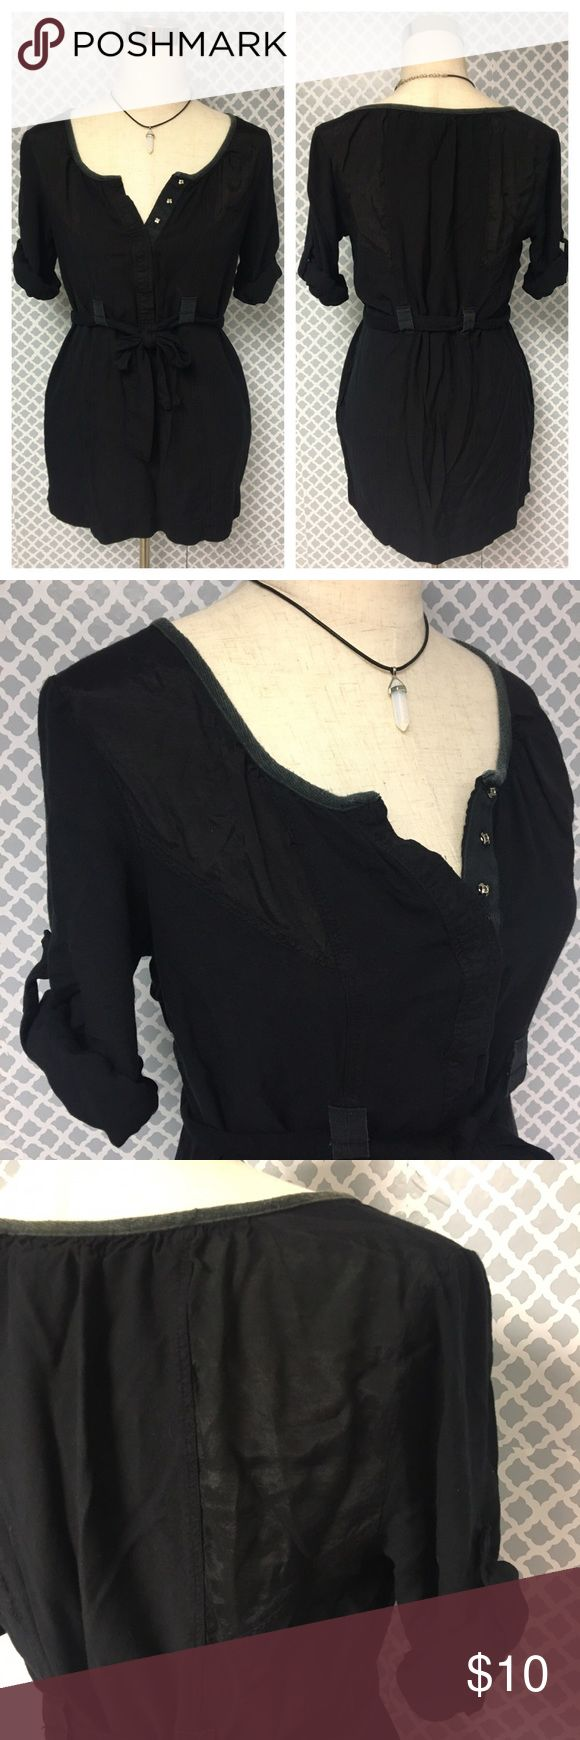 Urban Outfitters Staring at Stars Black Tunic Top Urban Outfitters Staring at Stars Black Tunic Top. Size medium! :) 15% off all bundles! Urban Outfitters Tops Tunics